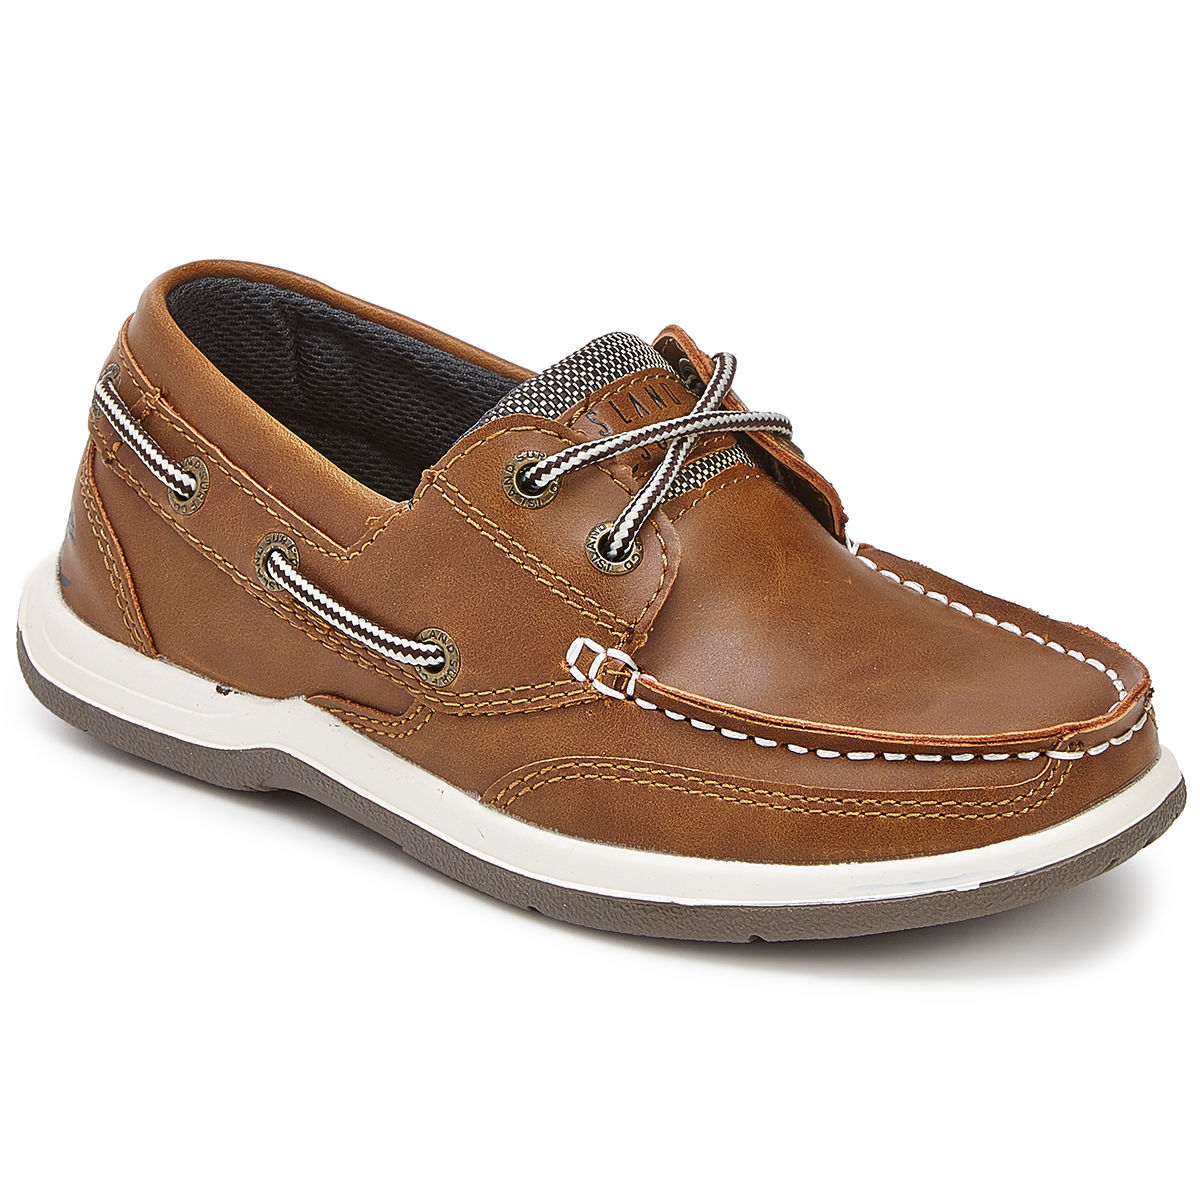 Island Surf Boys' Classic Boat Shoes - Brown, 6